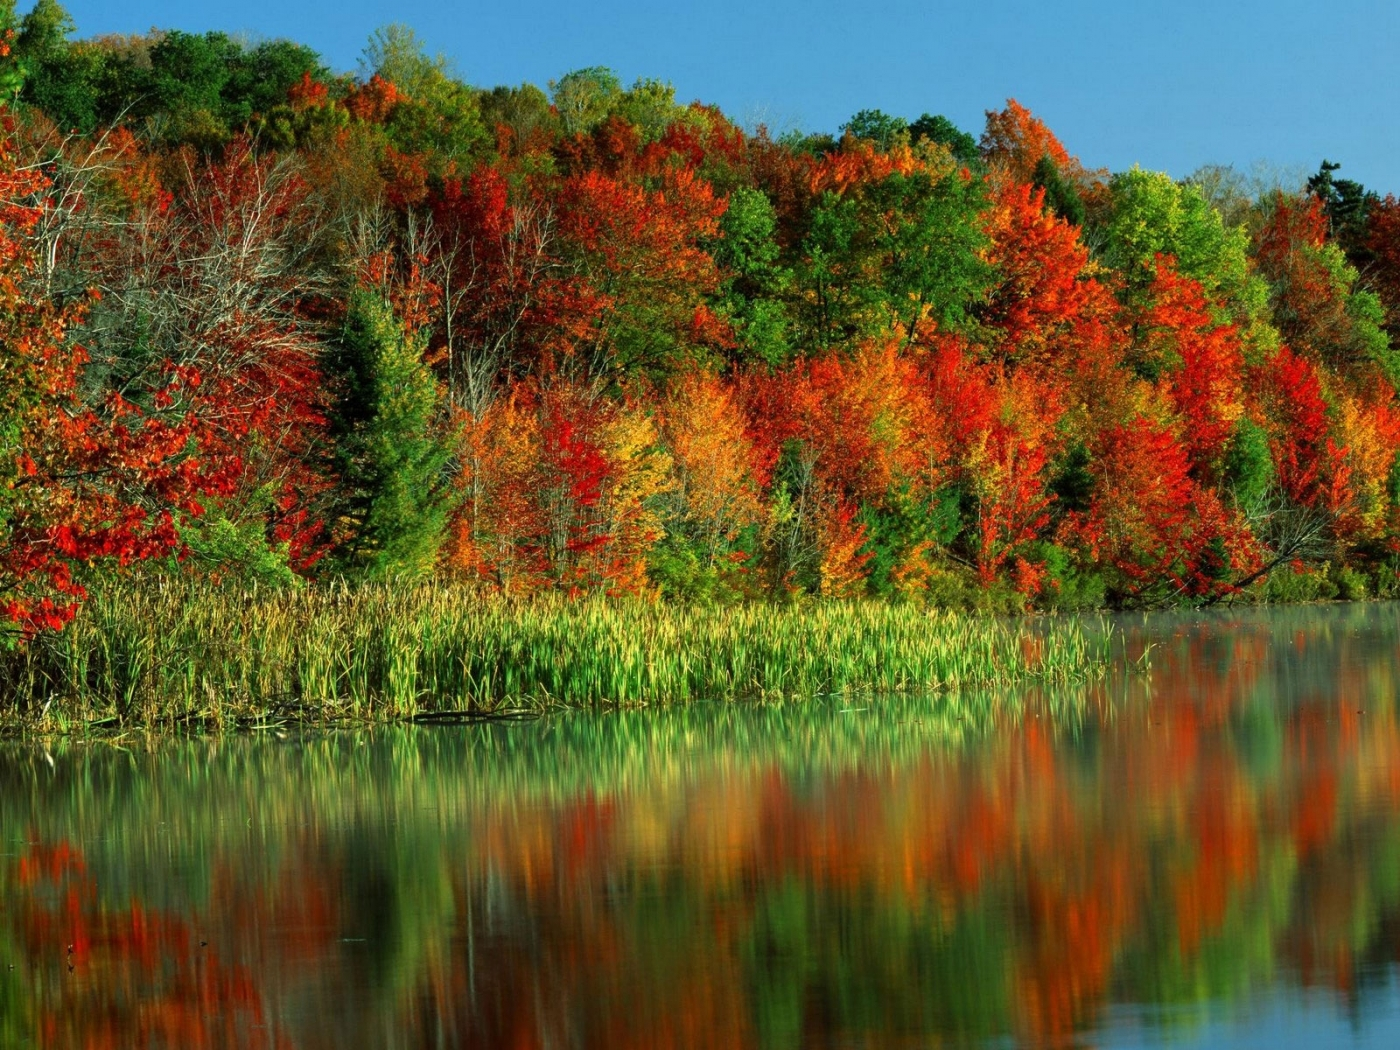 27943 download wallpaper Landscape, Rivers, Trees, Autumn screensavers and pictures for free